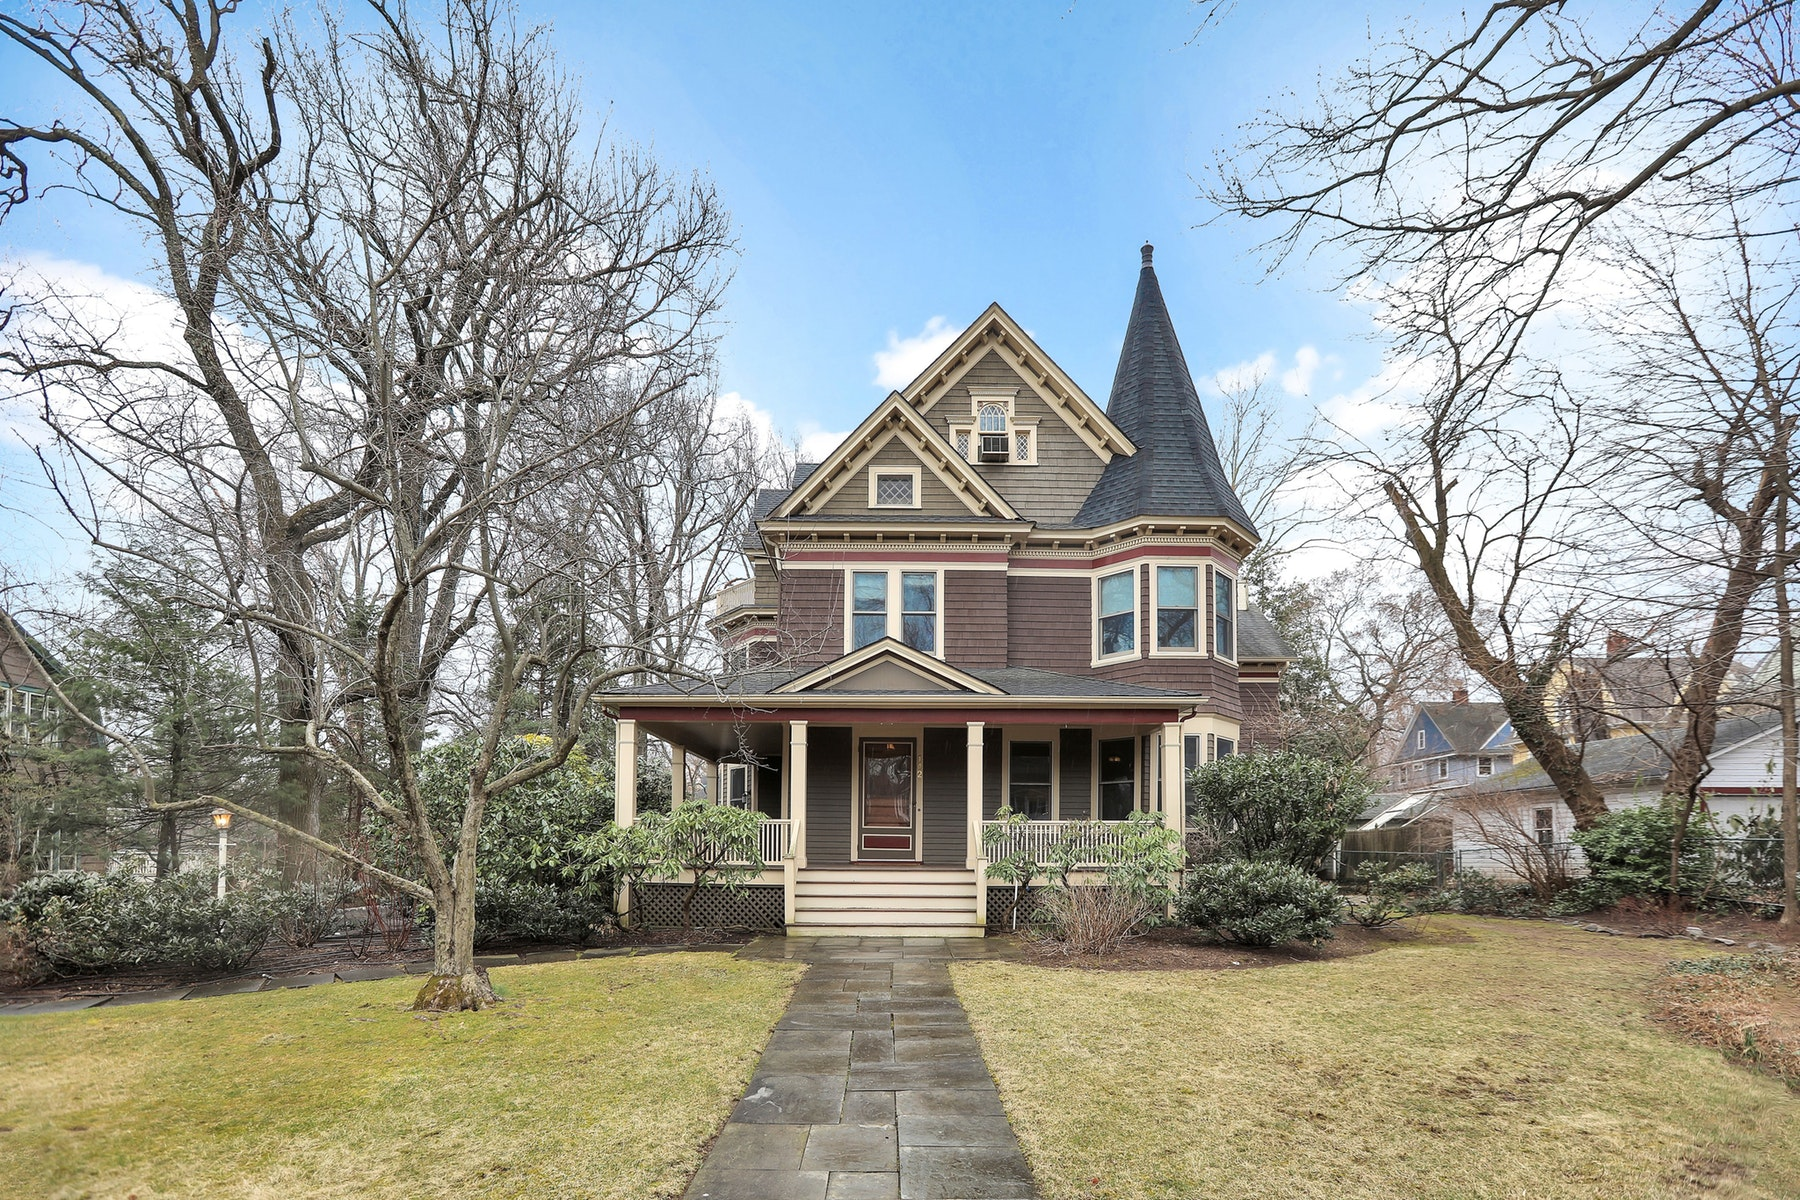 Single Family Home for Rent at Beautiful Mint Condition Victorian 142 Lorraine Avenue, Montclair, New Jersey 07043 United States